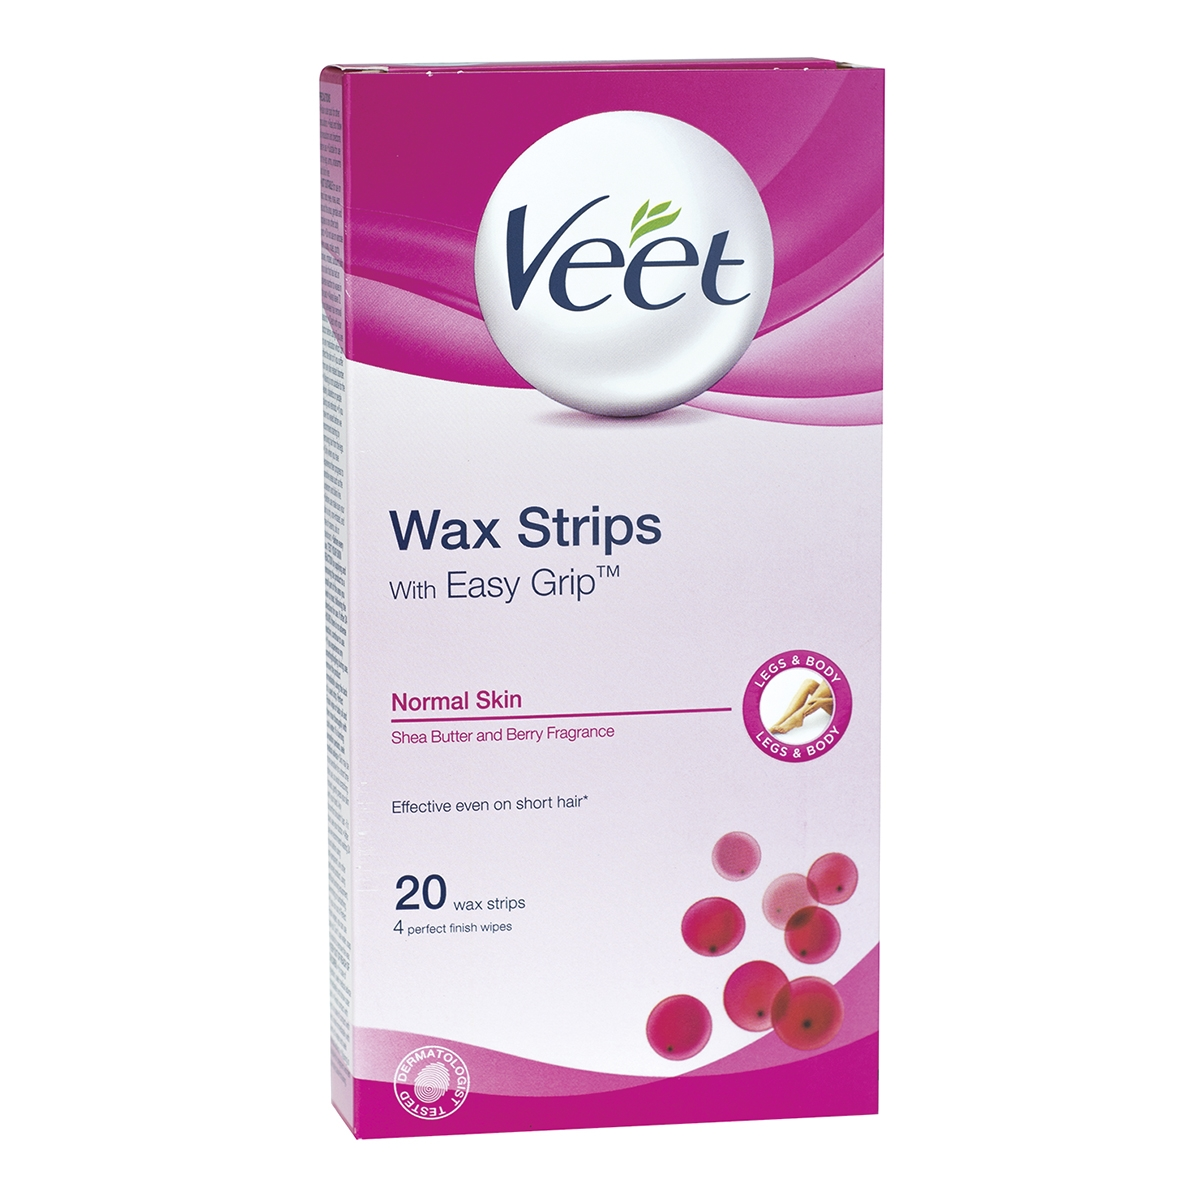 Veet Hair Removal Ready To Use Wax Strips 20 S For Normal Skin